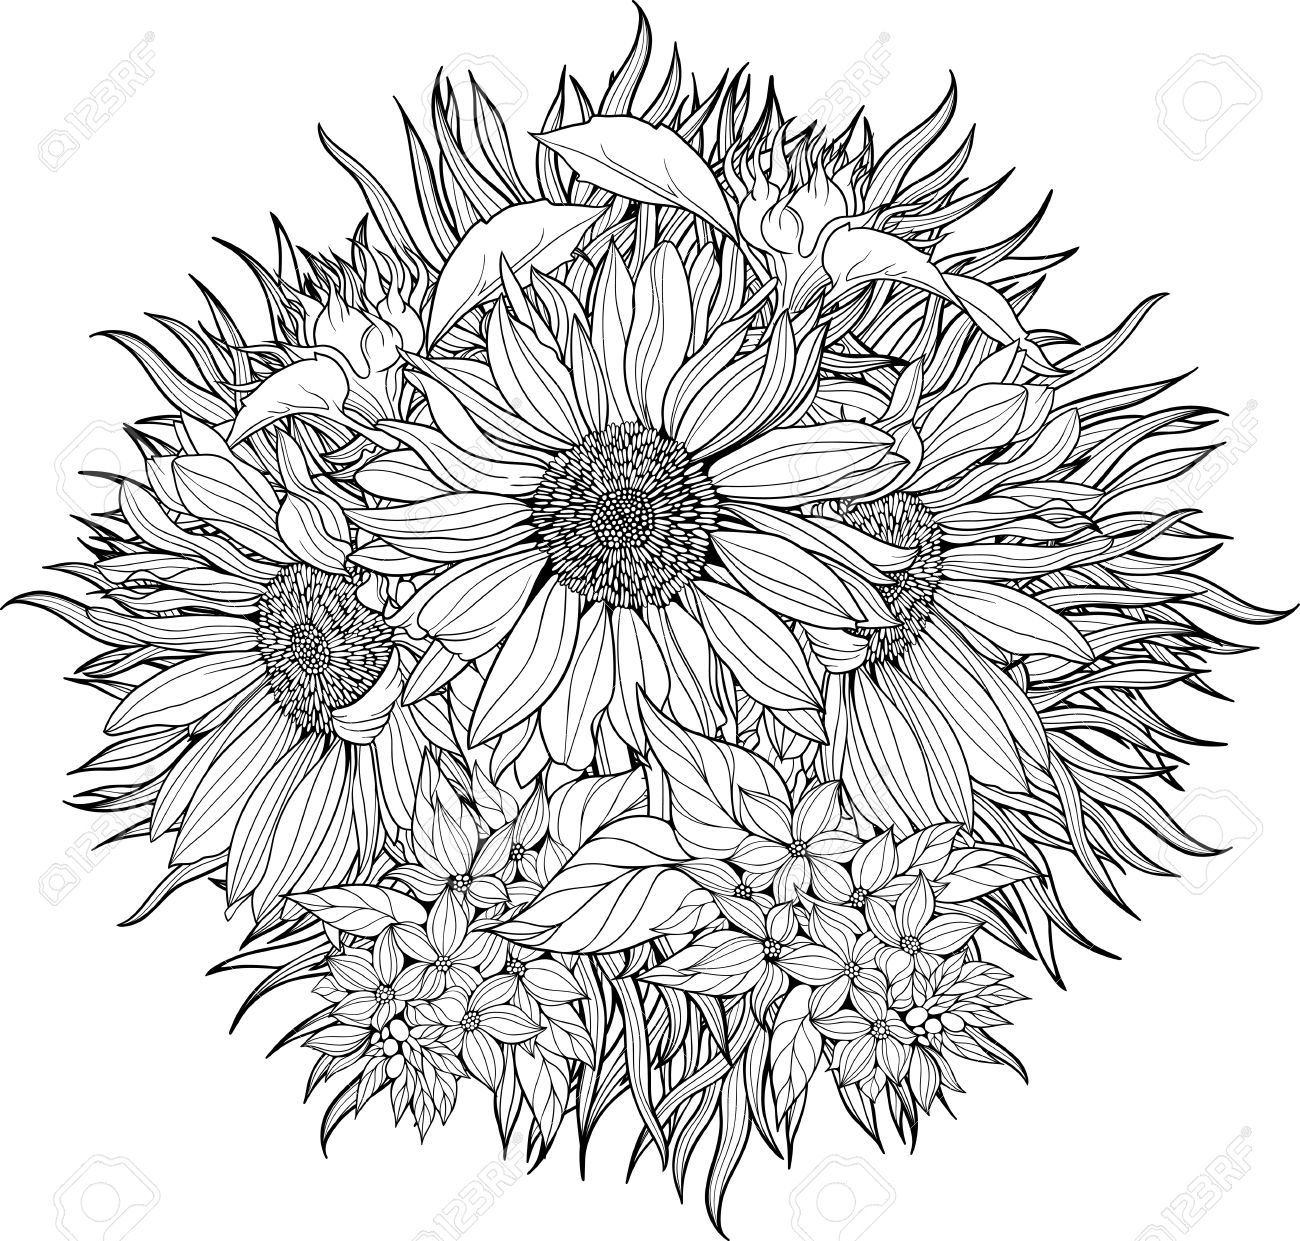 Close-up View Of Bunch Of Sunflowers. Coloring Page. Royalty Free ...